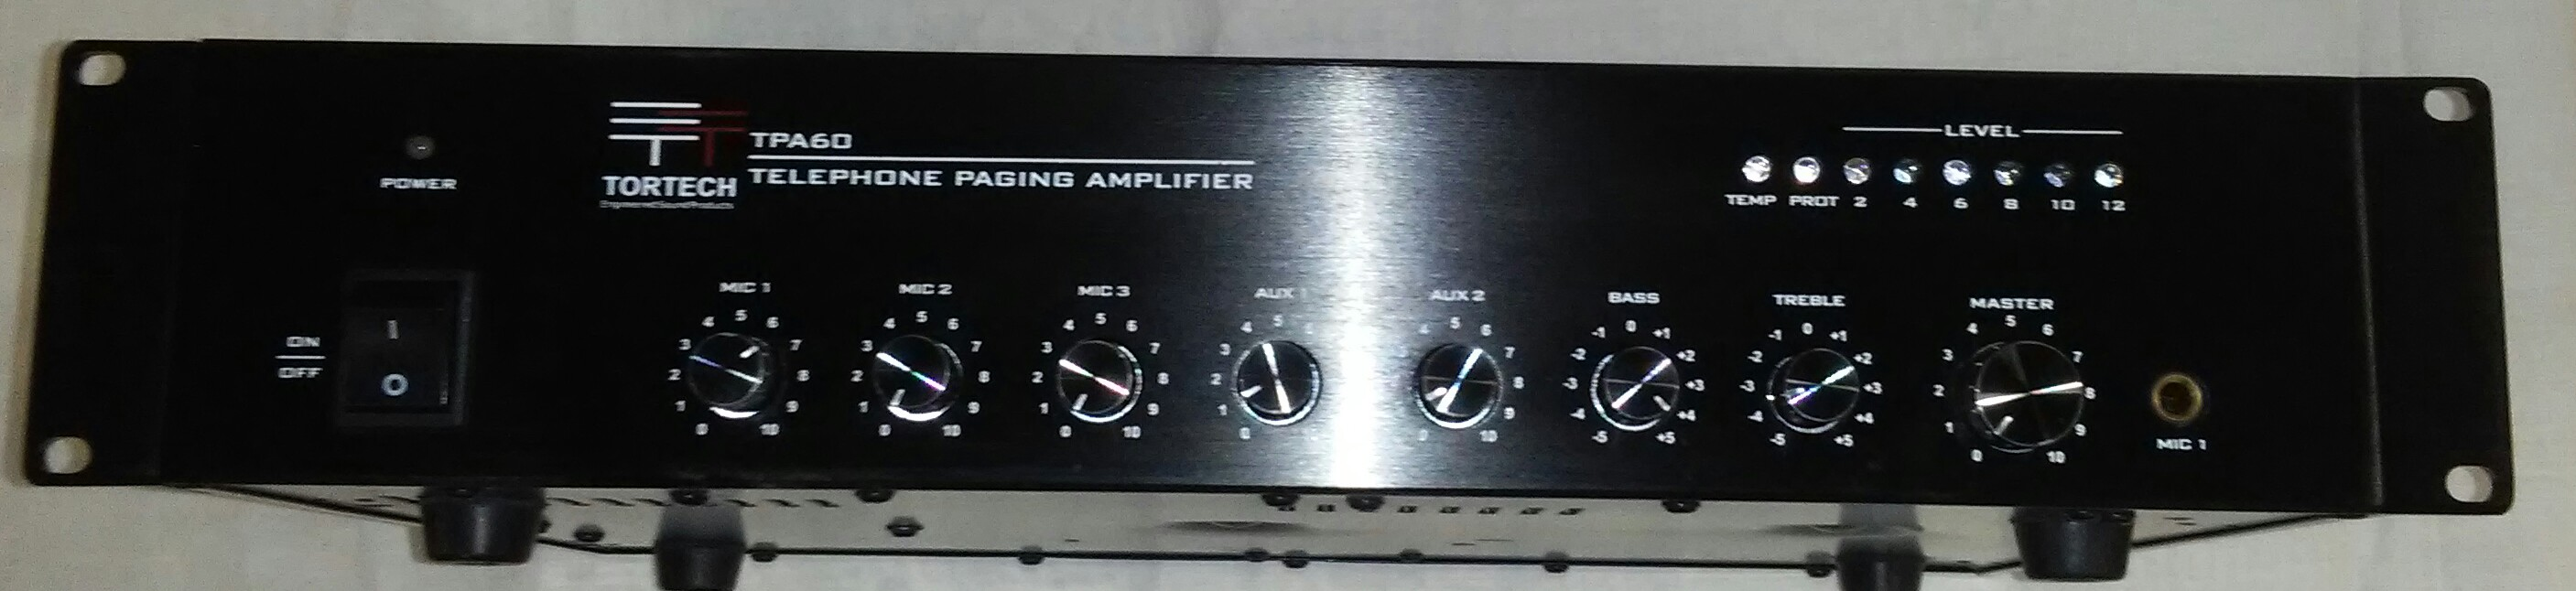 TPA60   60 Watt Telephone Paging Amplifier With Night Ringer